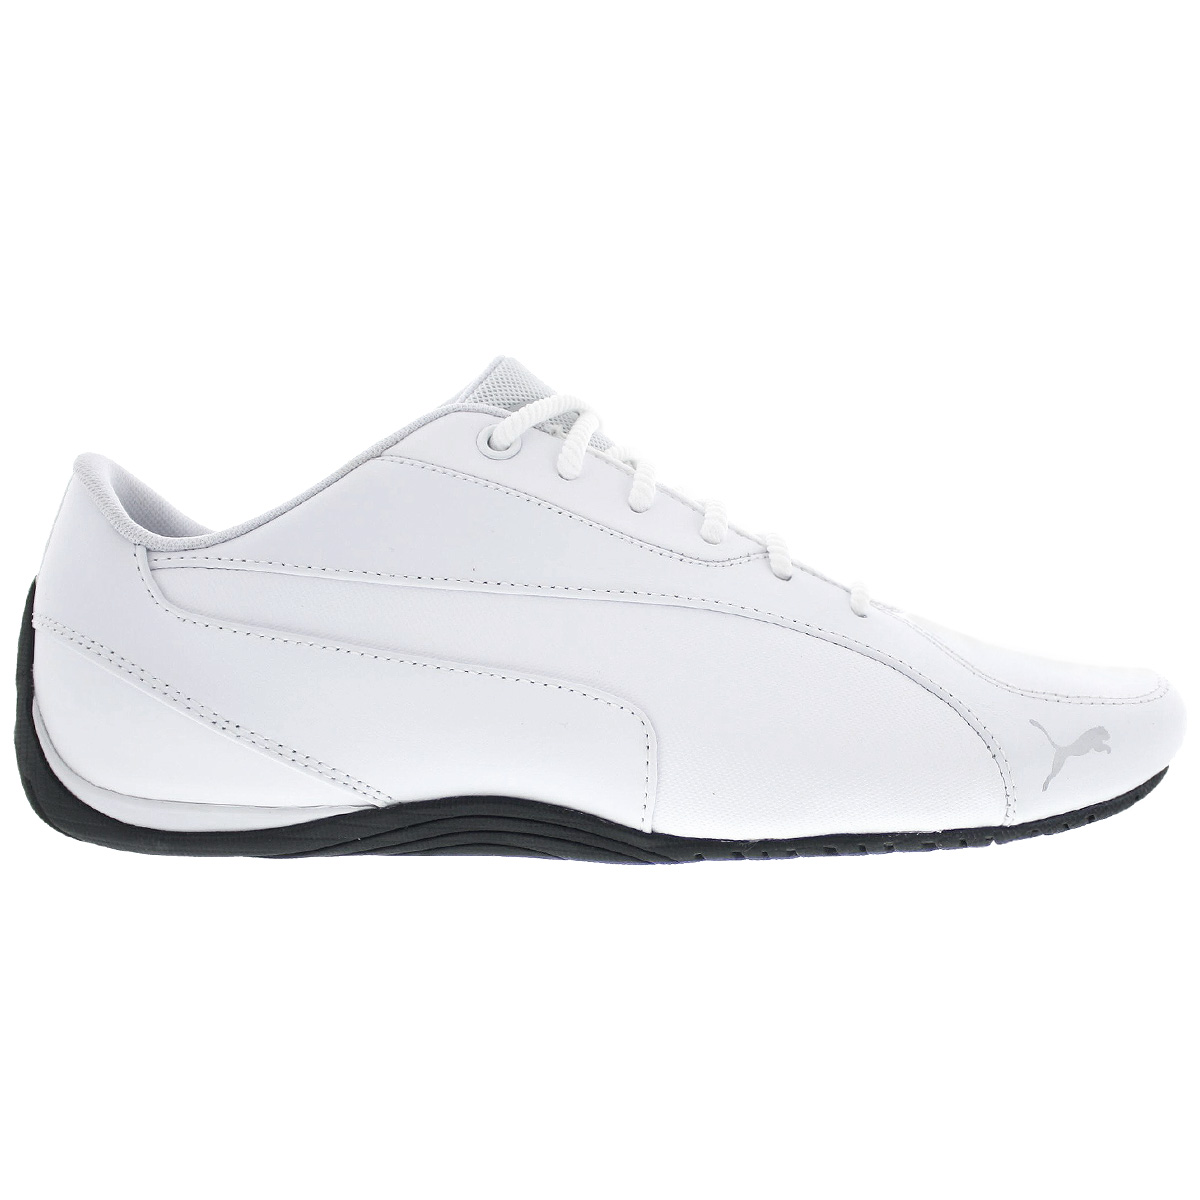 Details about NEW Puma Drift Cat 5 Core Leather 362416-03 Men''s Shoes  Trainers Sneakers SALE